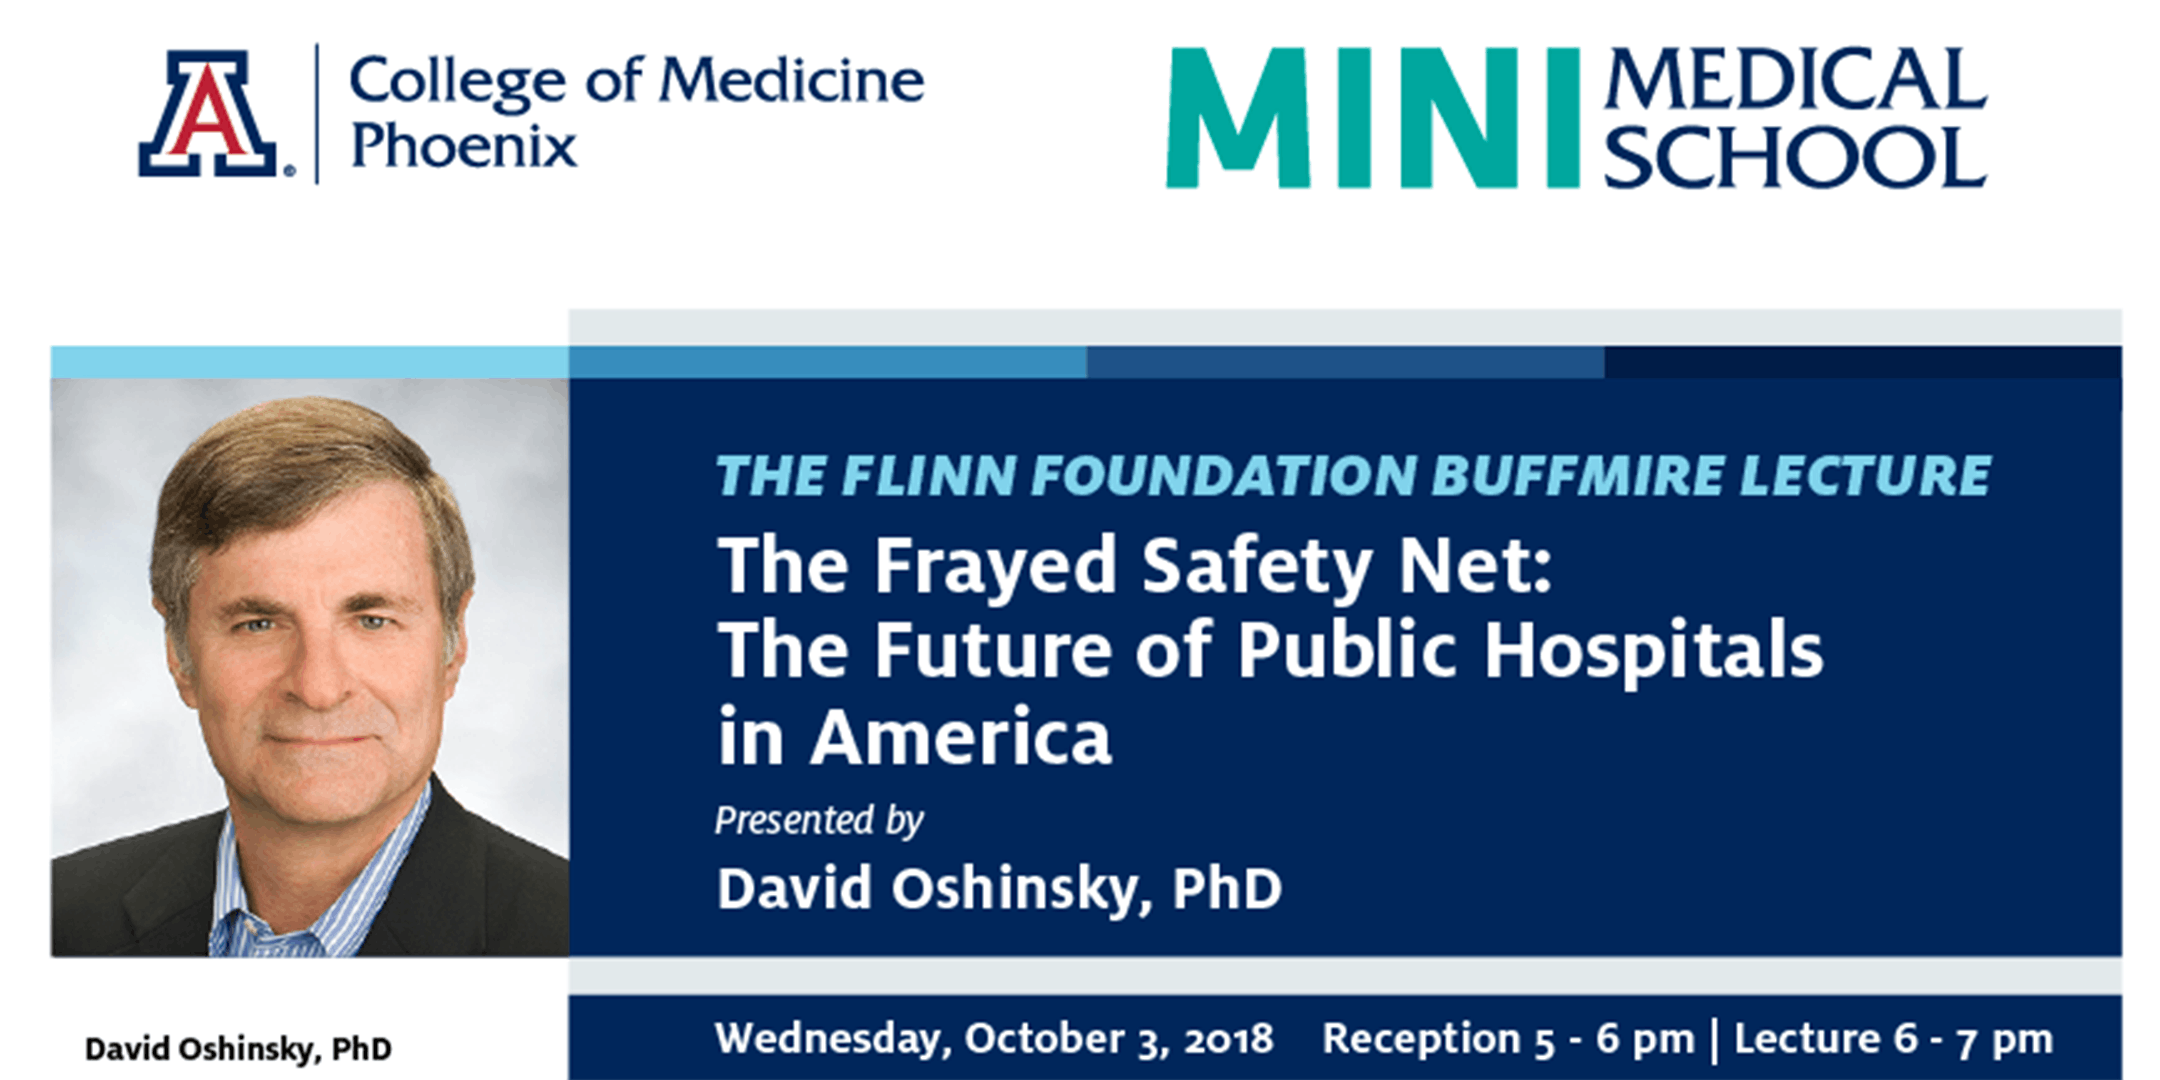 Mini-Medical School and the Flinn Foundation Buffmire Lecture - The Frayed Safety Net: The Future of Public Hospitals in America